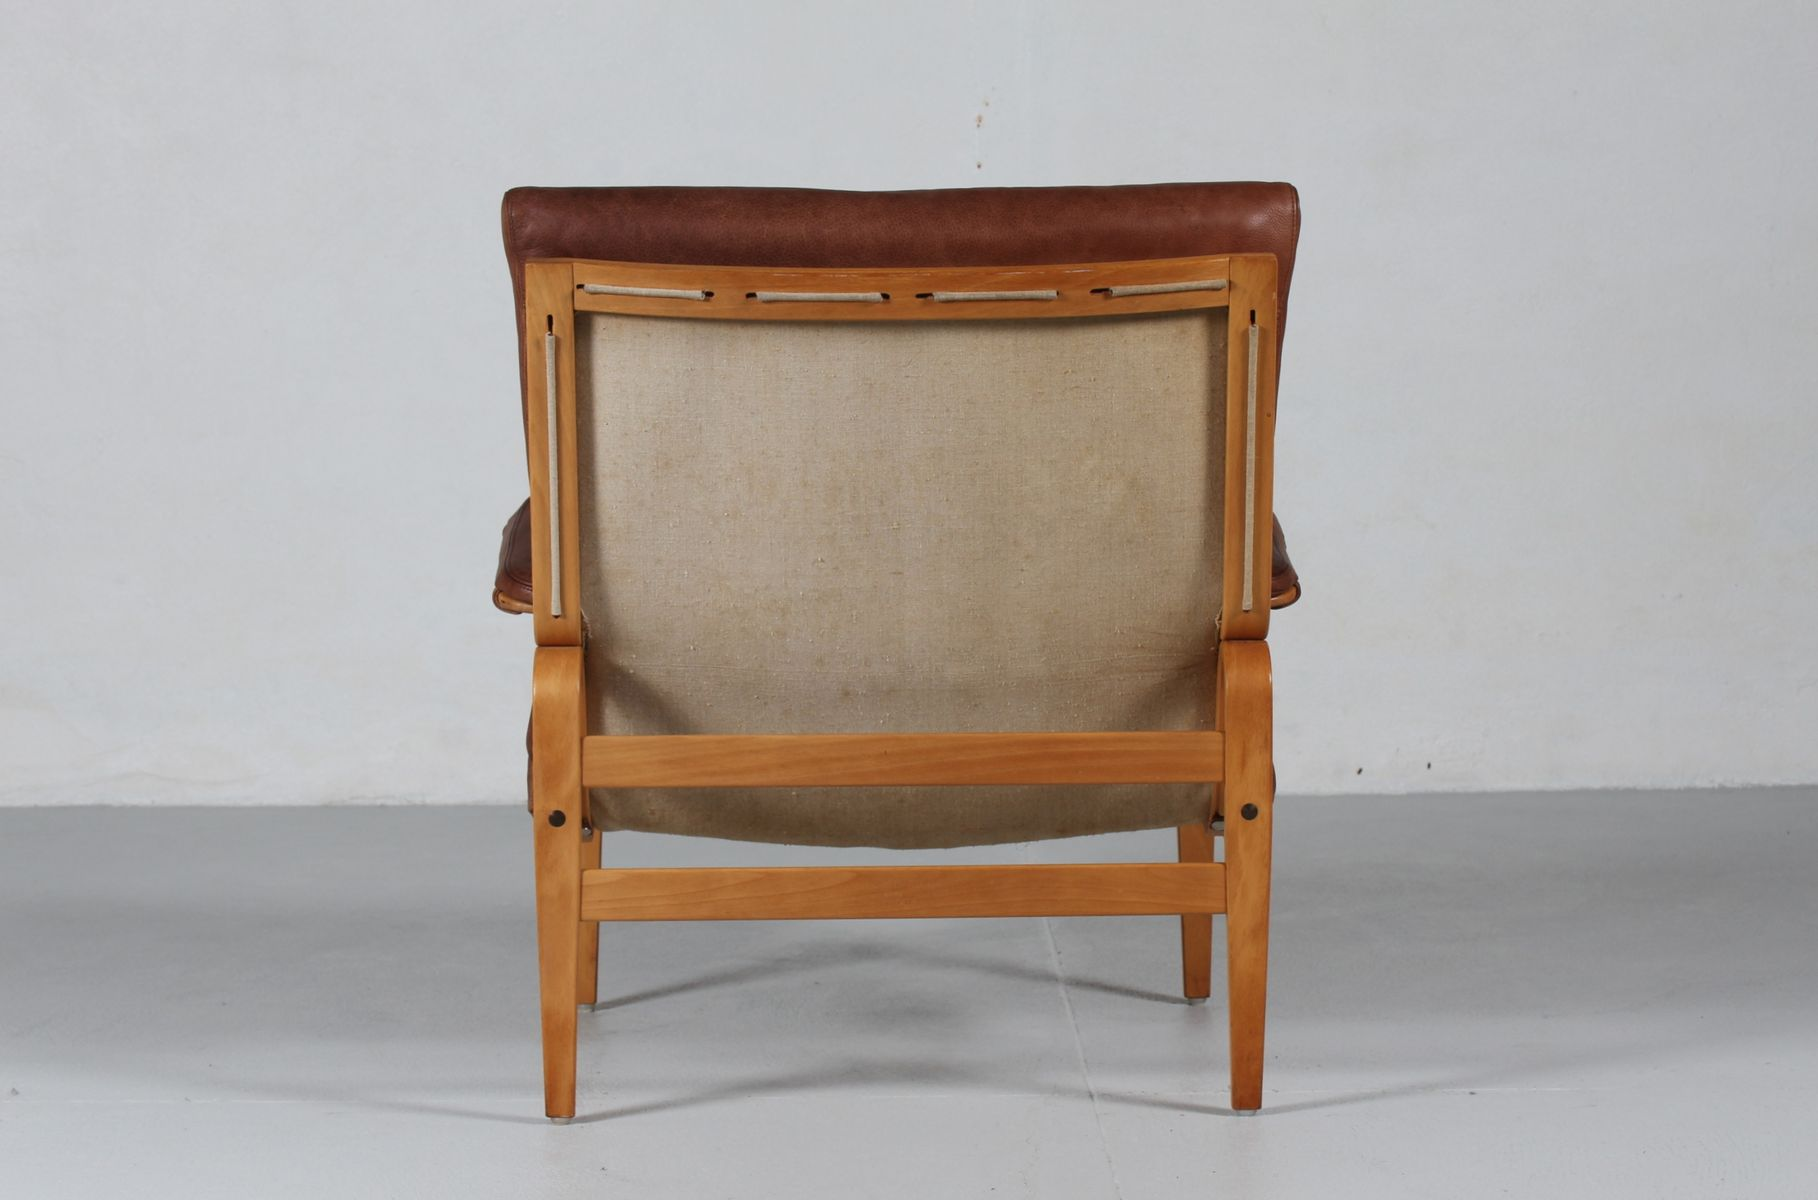 Ingrid Cognac Leather Easy Chair by Bruno Mathsson for Dux for